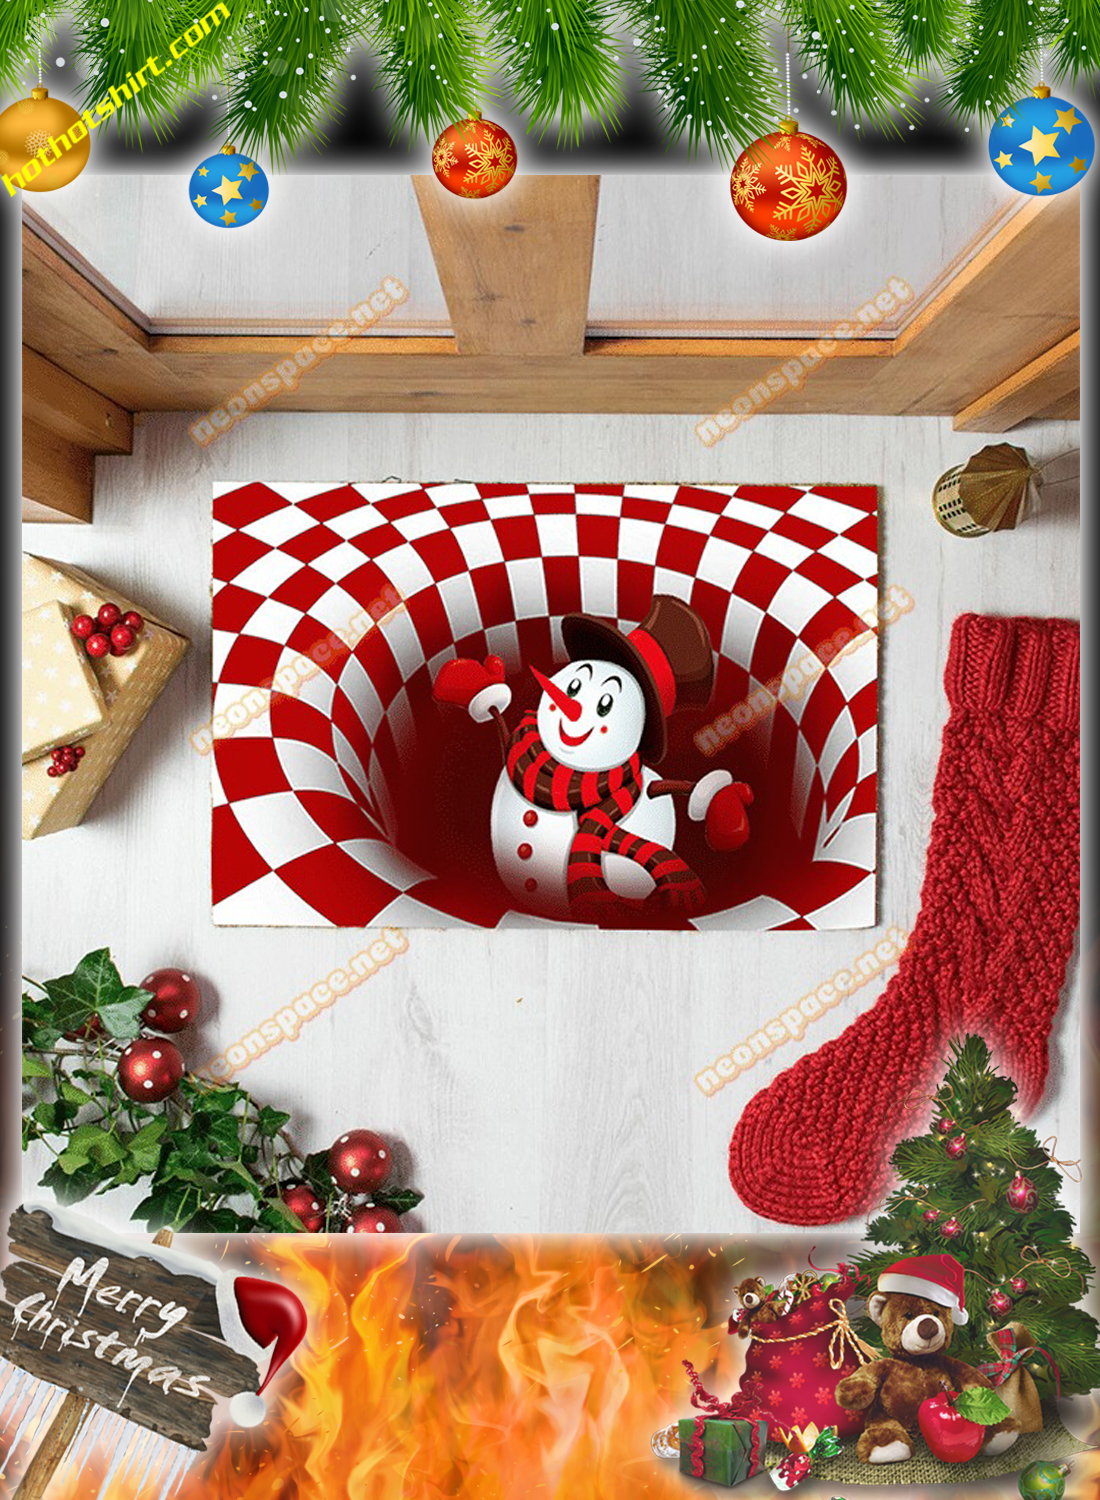 Cheer snowman christmas 3D illusion doormat 2